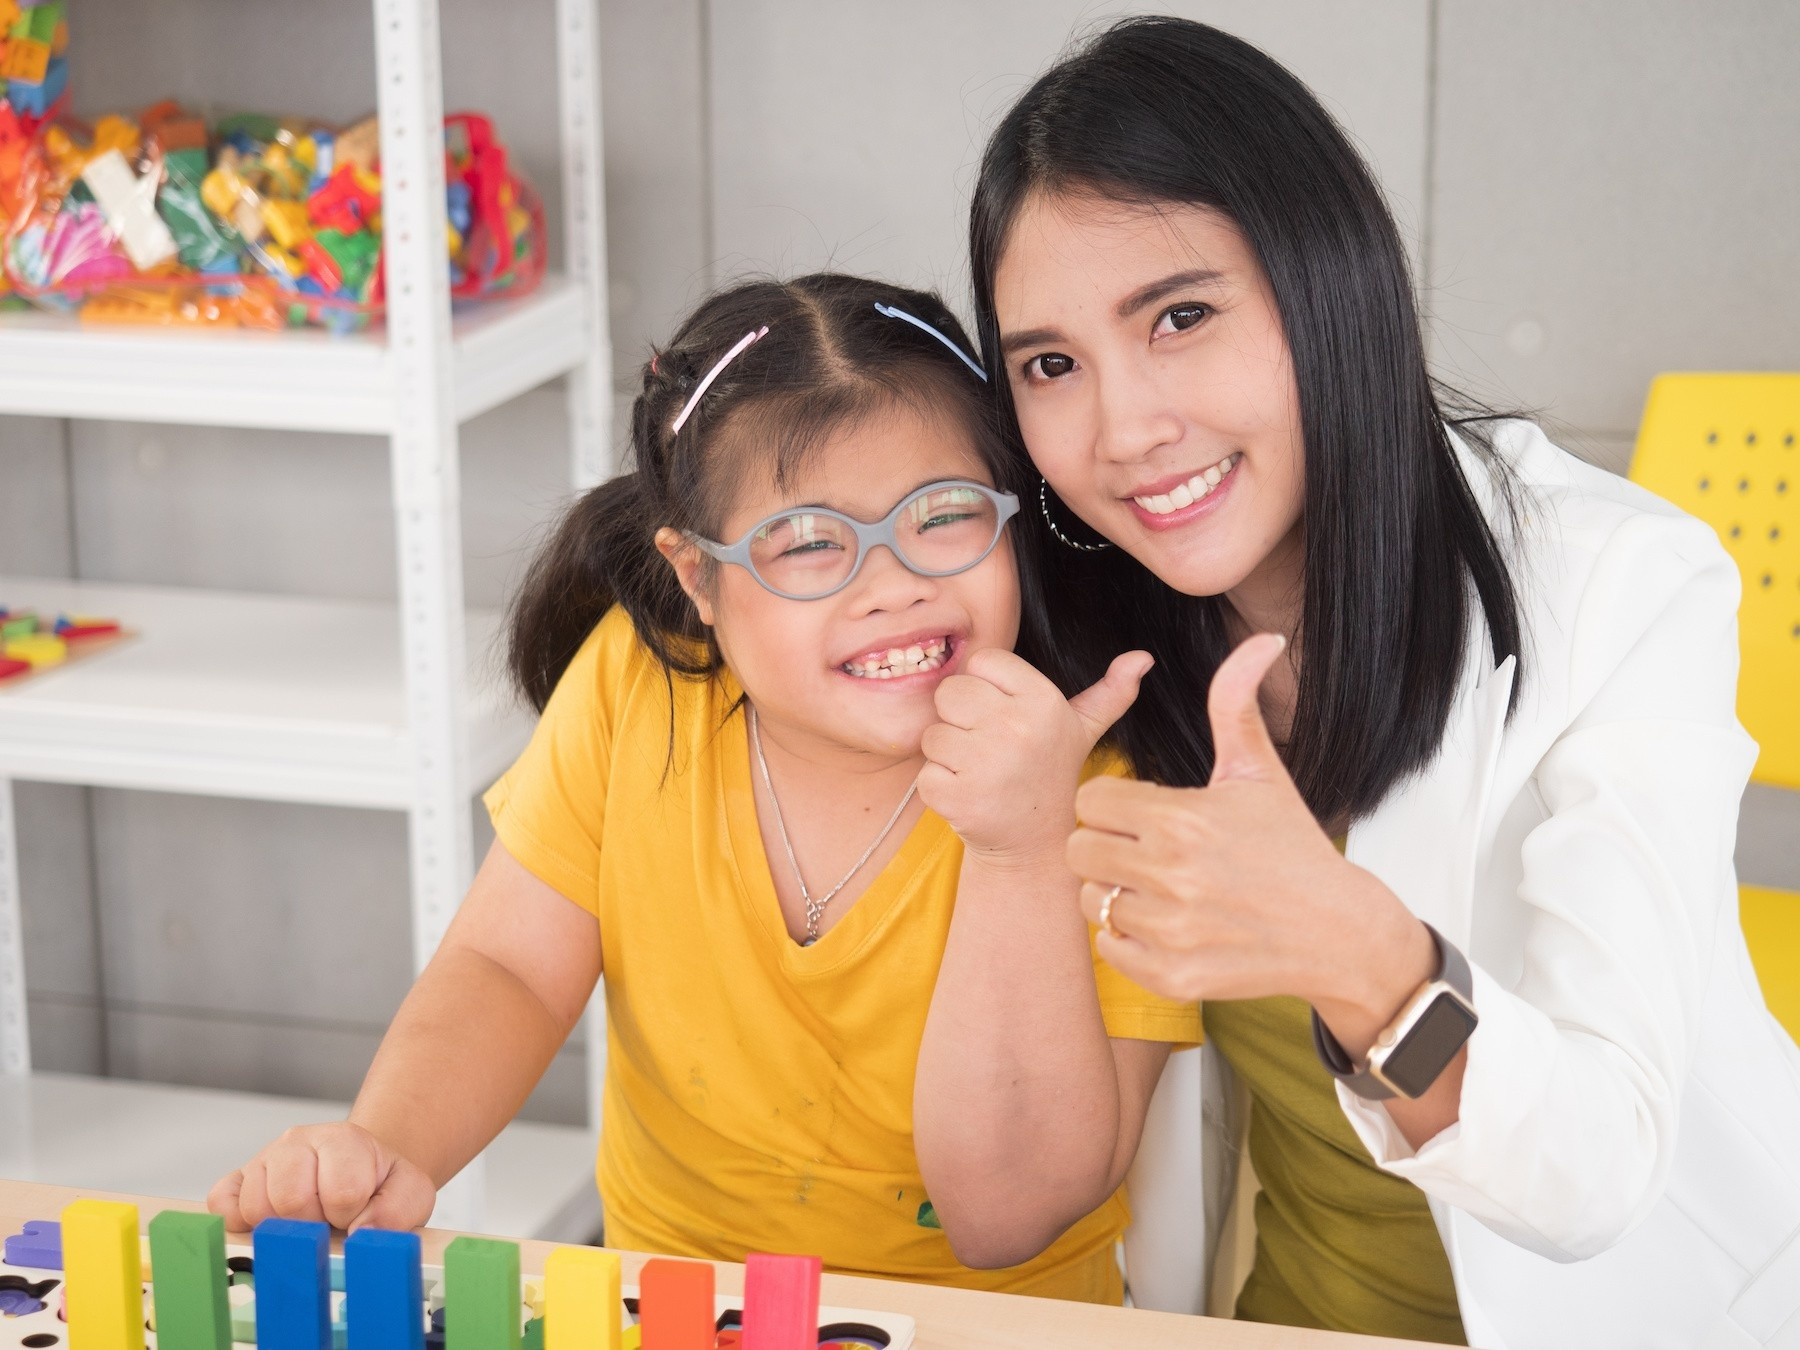 Teacher and student smiling and giving thumbs up